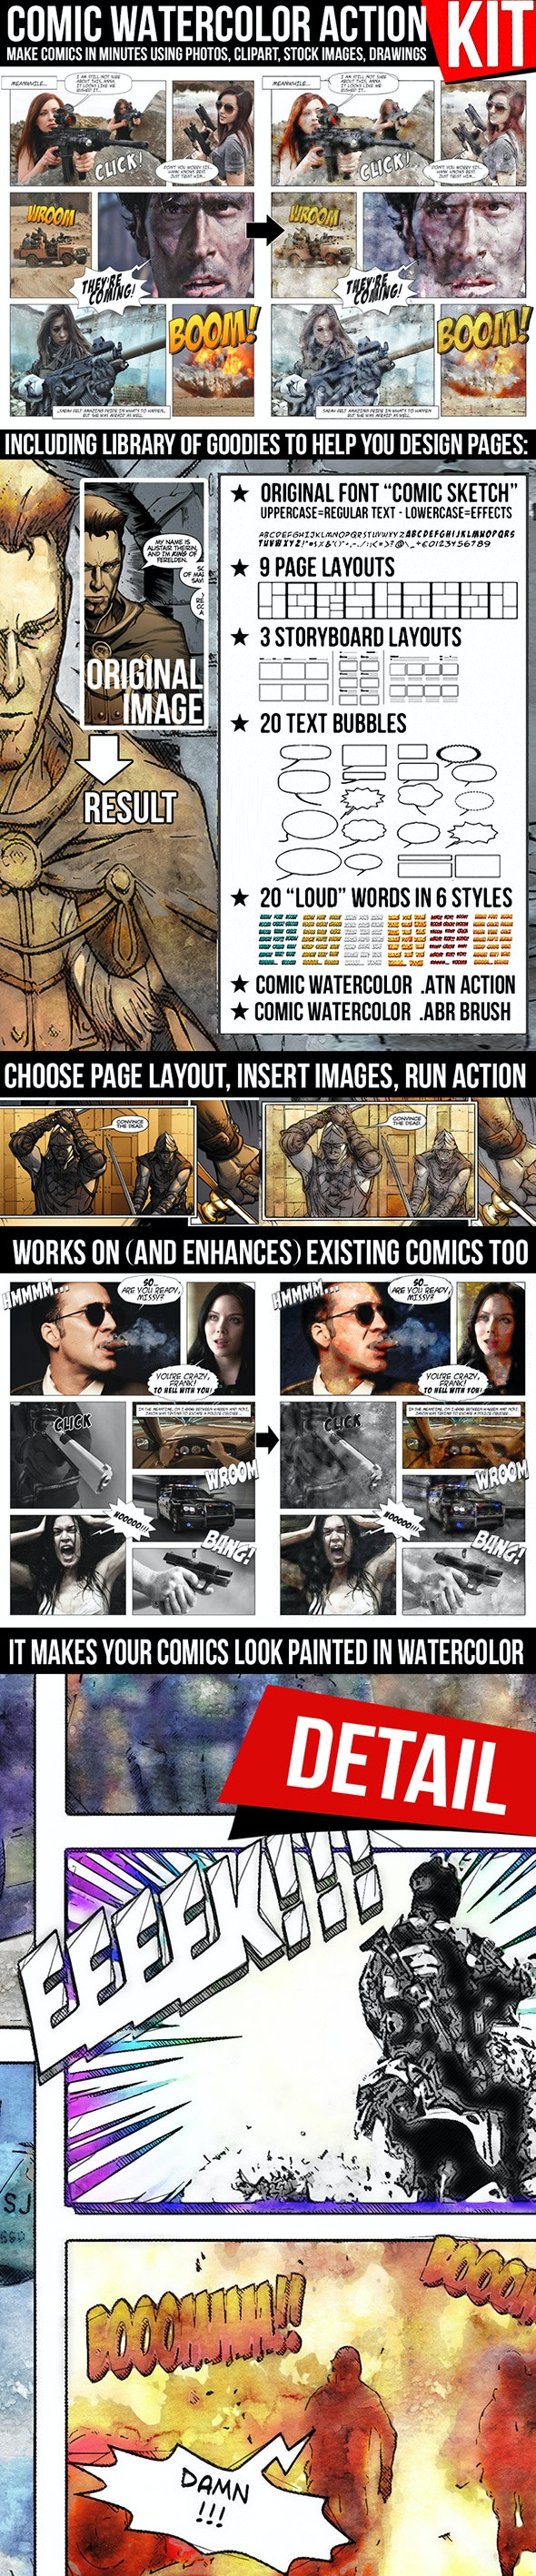 Comic Watercolor Action Kit - Photo Effects Actions